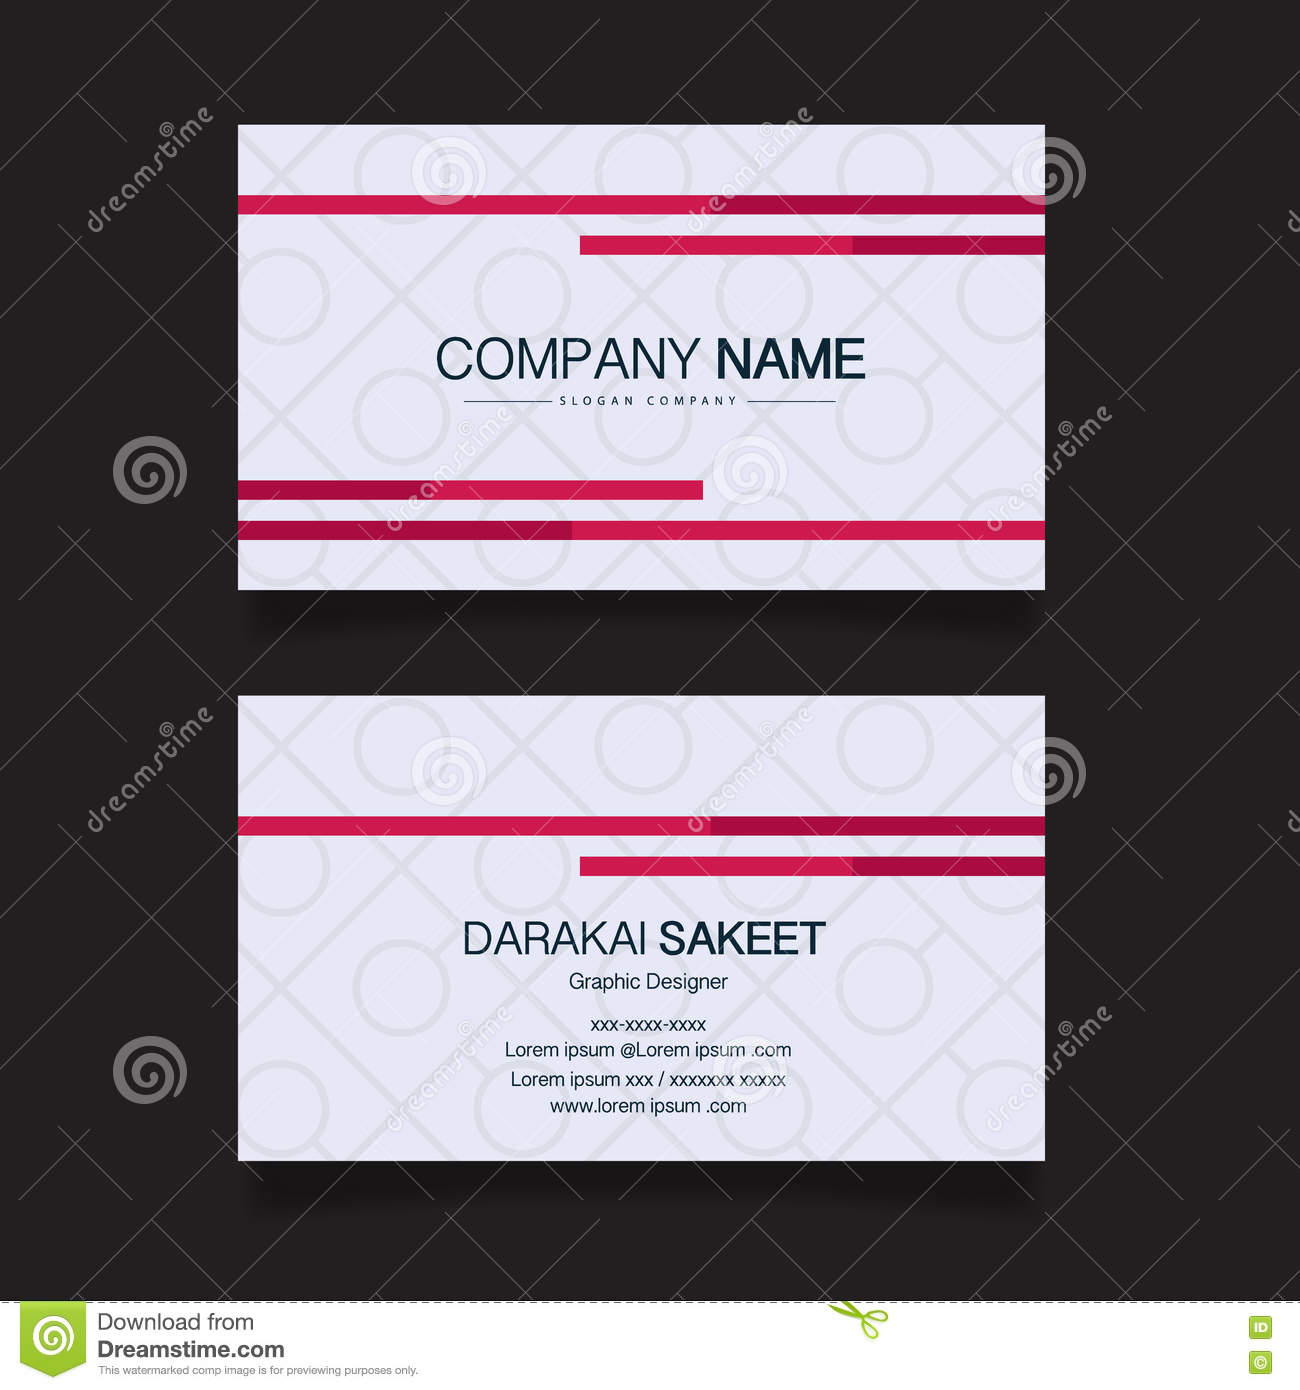 Name card modern simple business card template stock vector download comp colourmoves